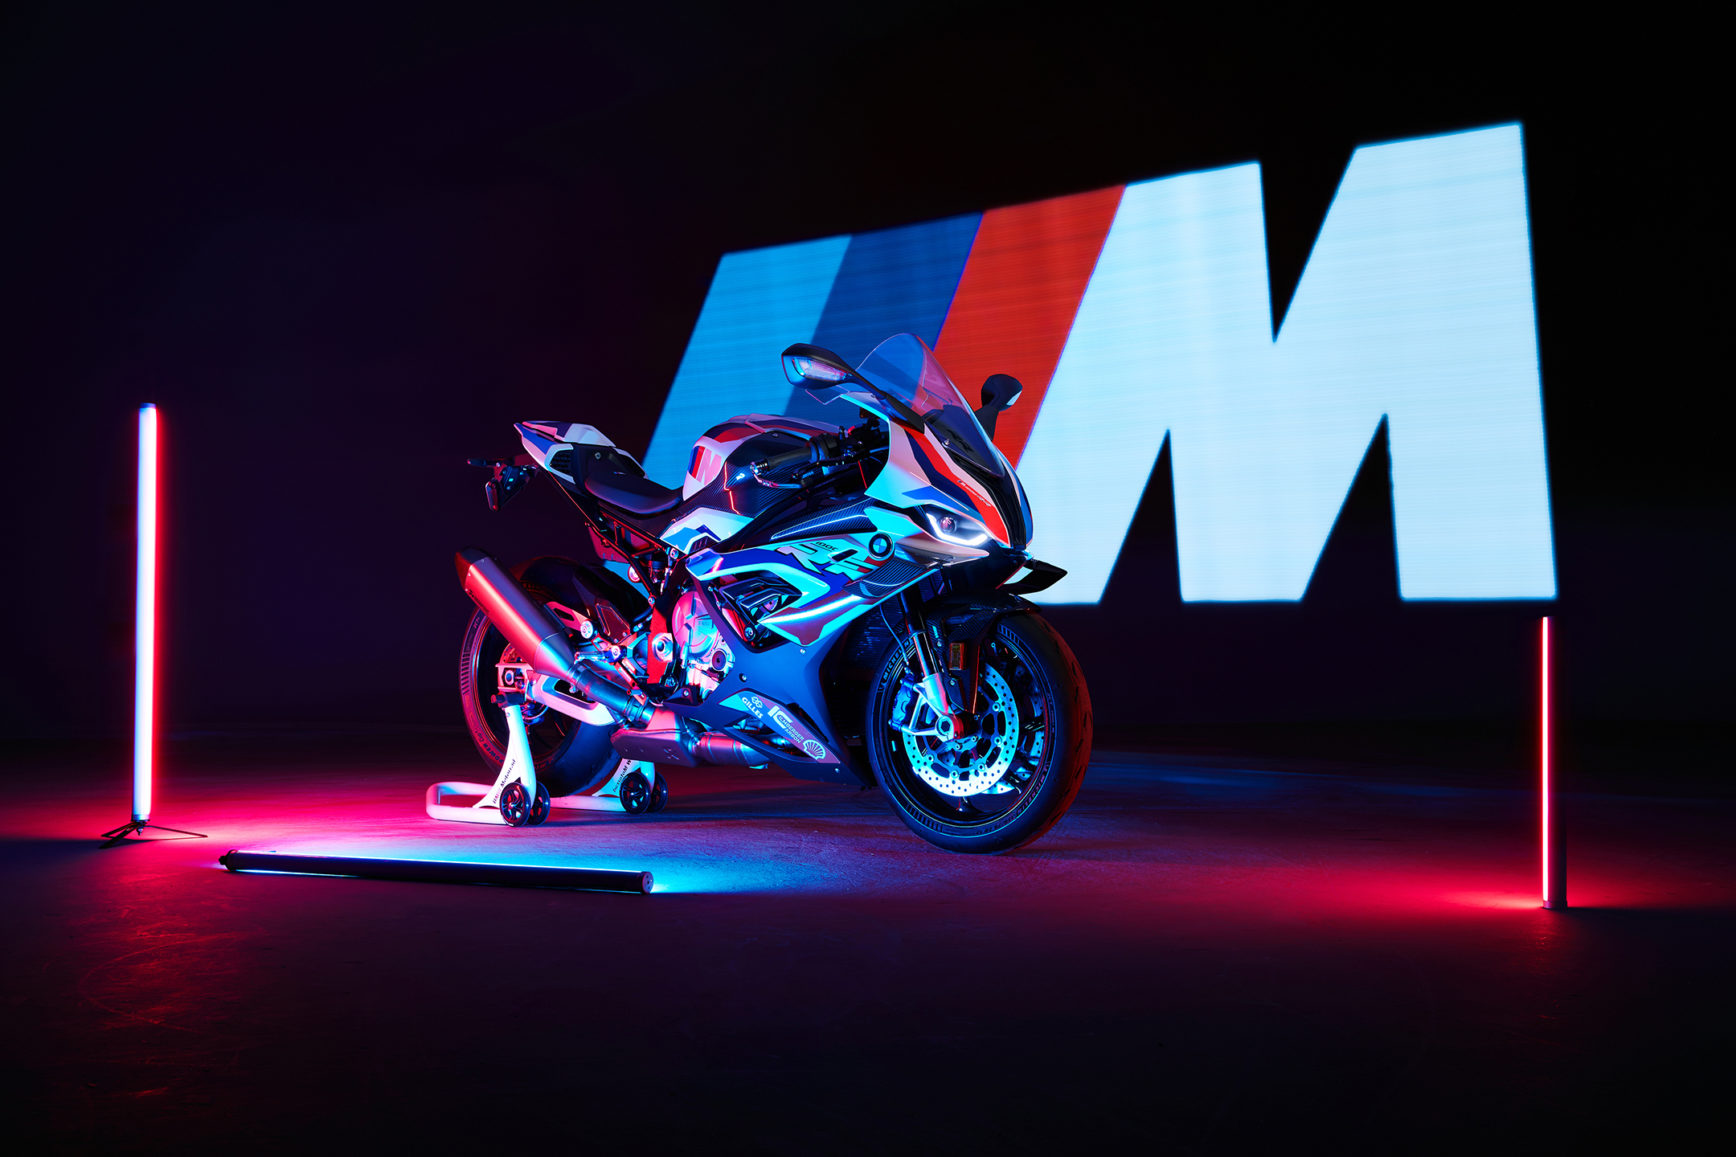 BMW M 1000 RR - 2020 - reveal photo studio